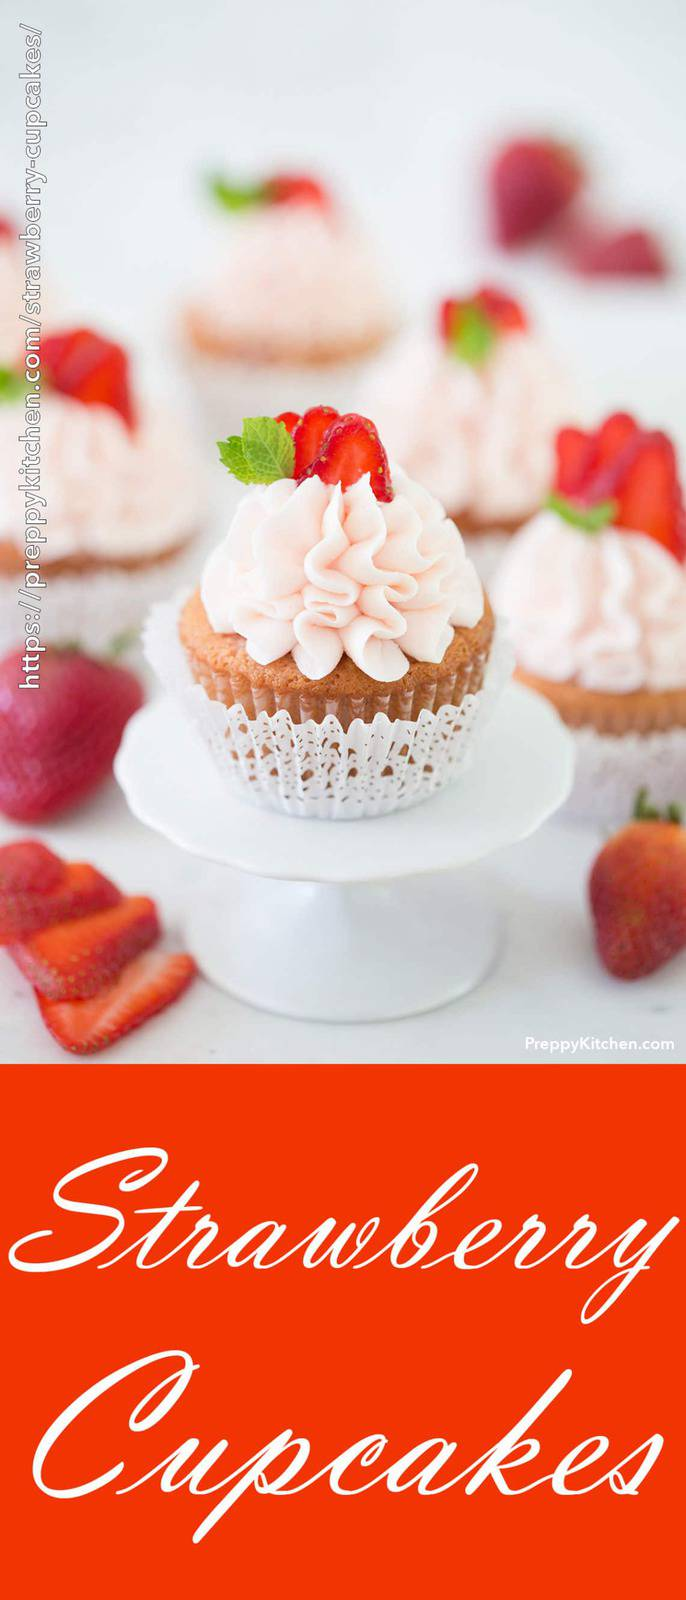 These moist and delicious cupcakes made with fresh strawberries are topped with an easy to make and DELICIOUS buttercream. I guarantee, they're sure to please!